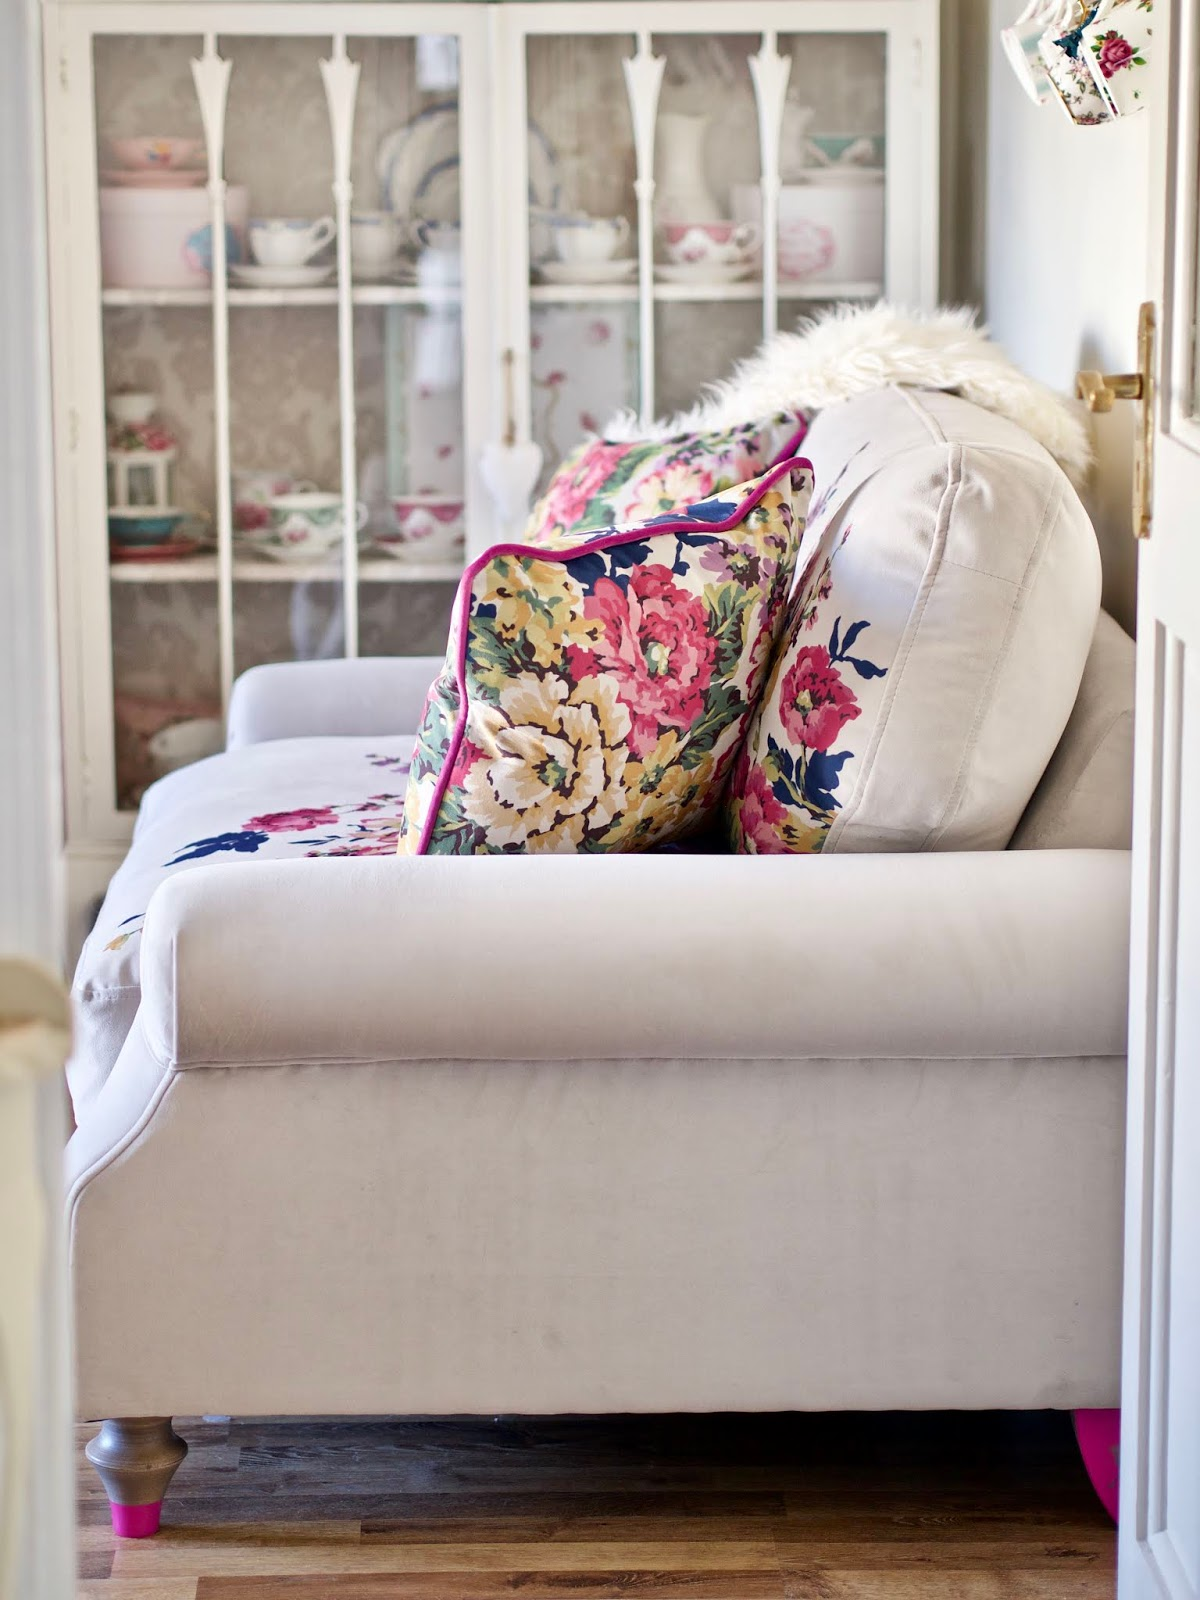 Dfs Sofas That Come Apart Retro Style Sofa Melbourne Living Room Update Ad Dainty Dress Diaries And Don T Know Where To Start Then Check Out My Video I Made With Lisa From We Went Into Detail Shared Some Tips For Picking The